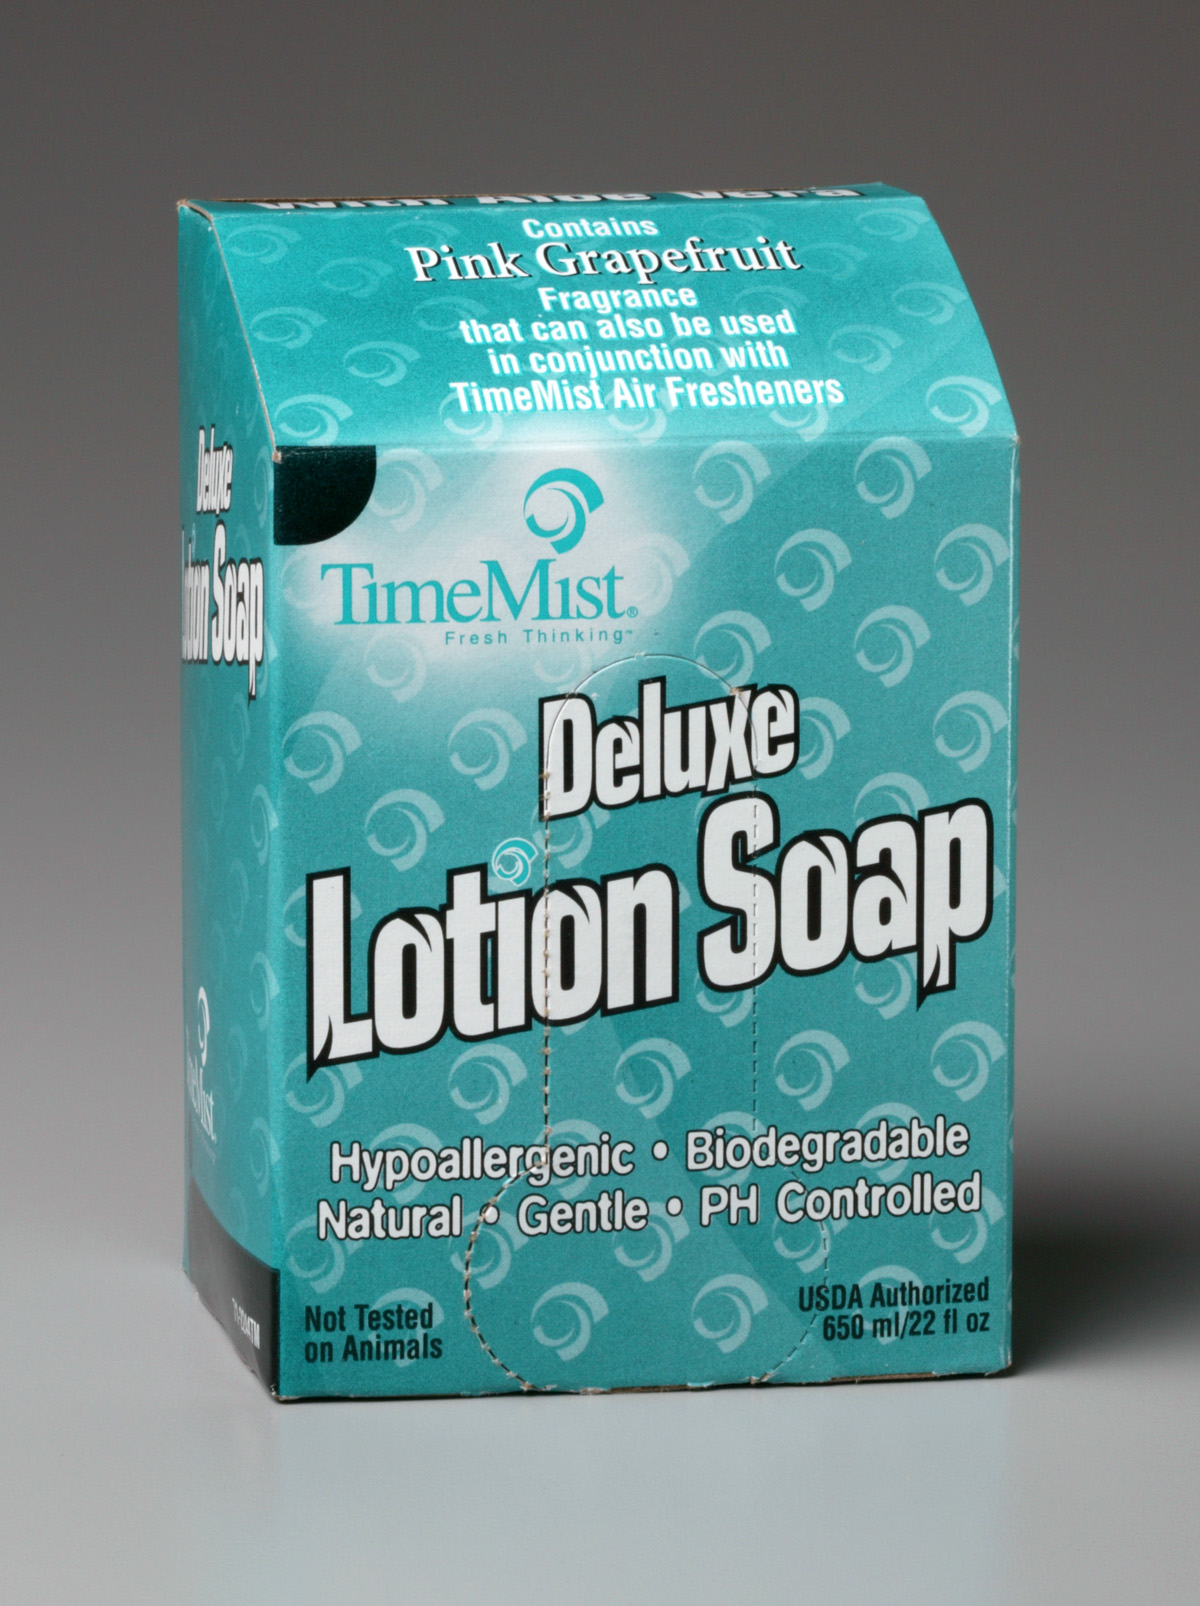 Pink Lotion Bag-In-Box Soap